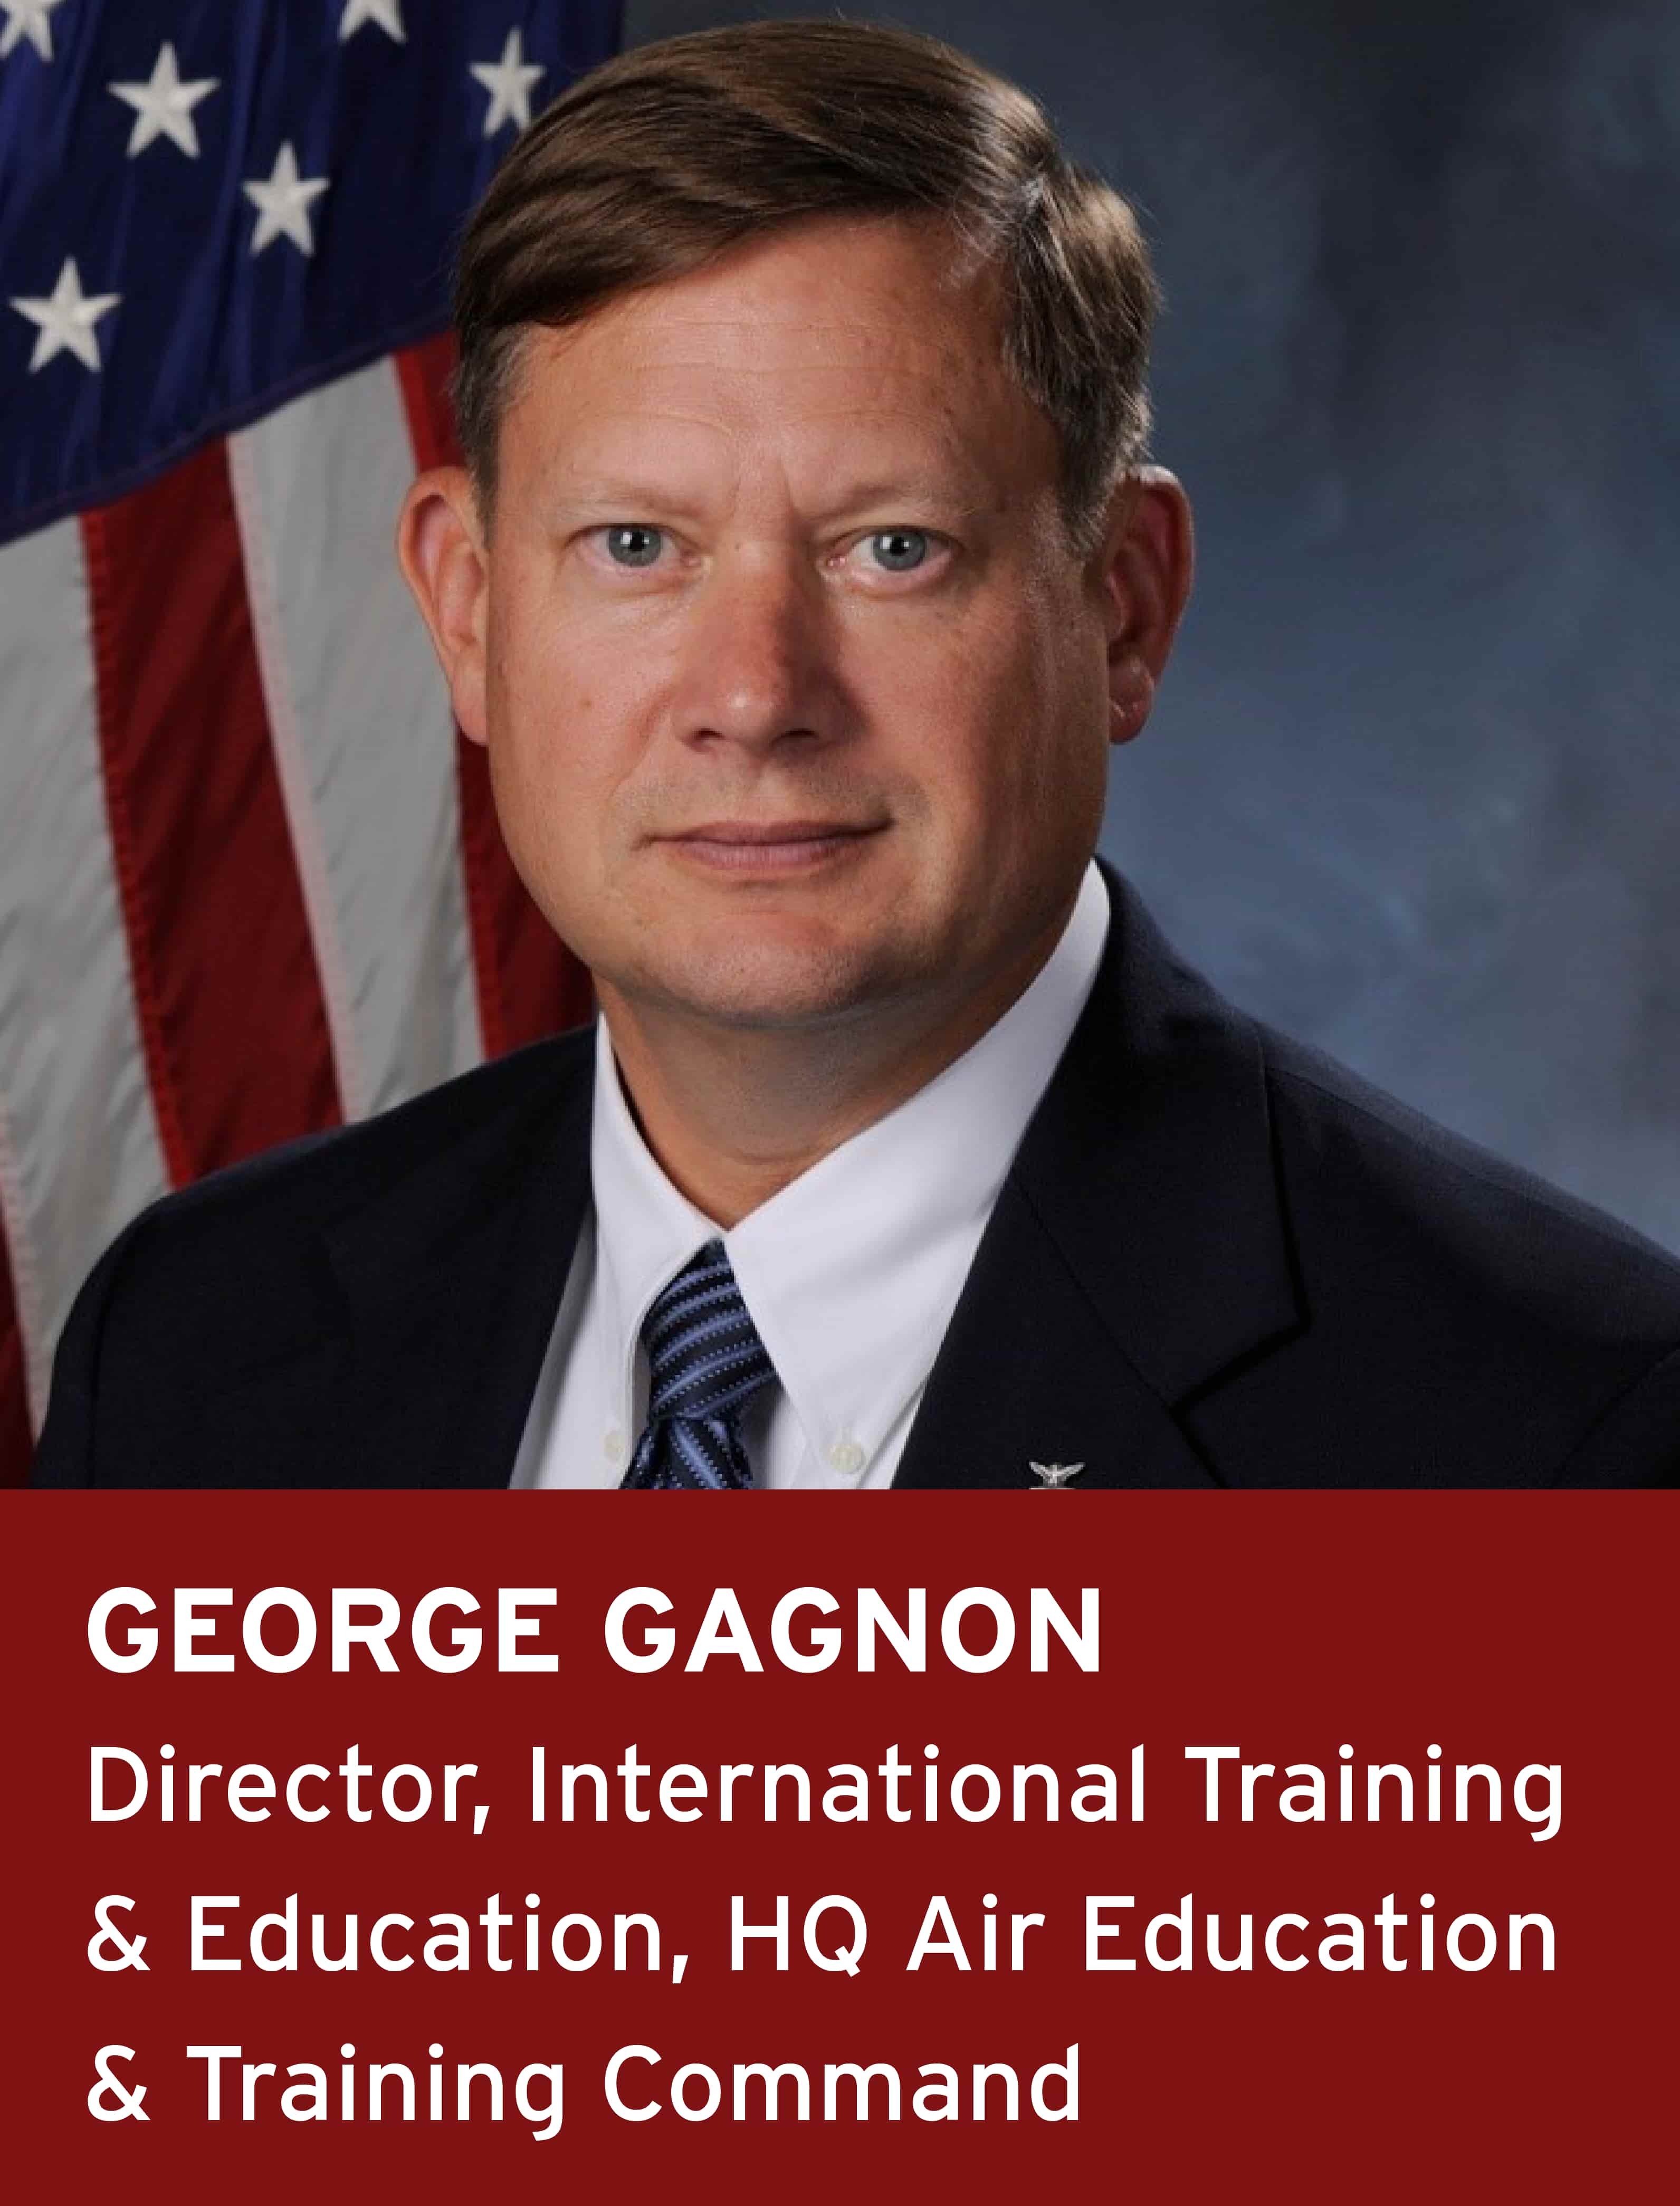 George Gagnon, Director, International Training and Education, Headquarters Air Education & Training Command